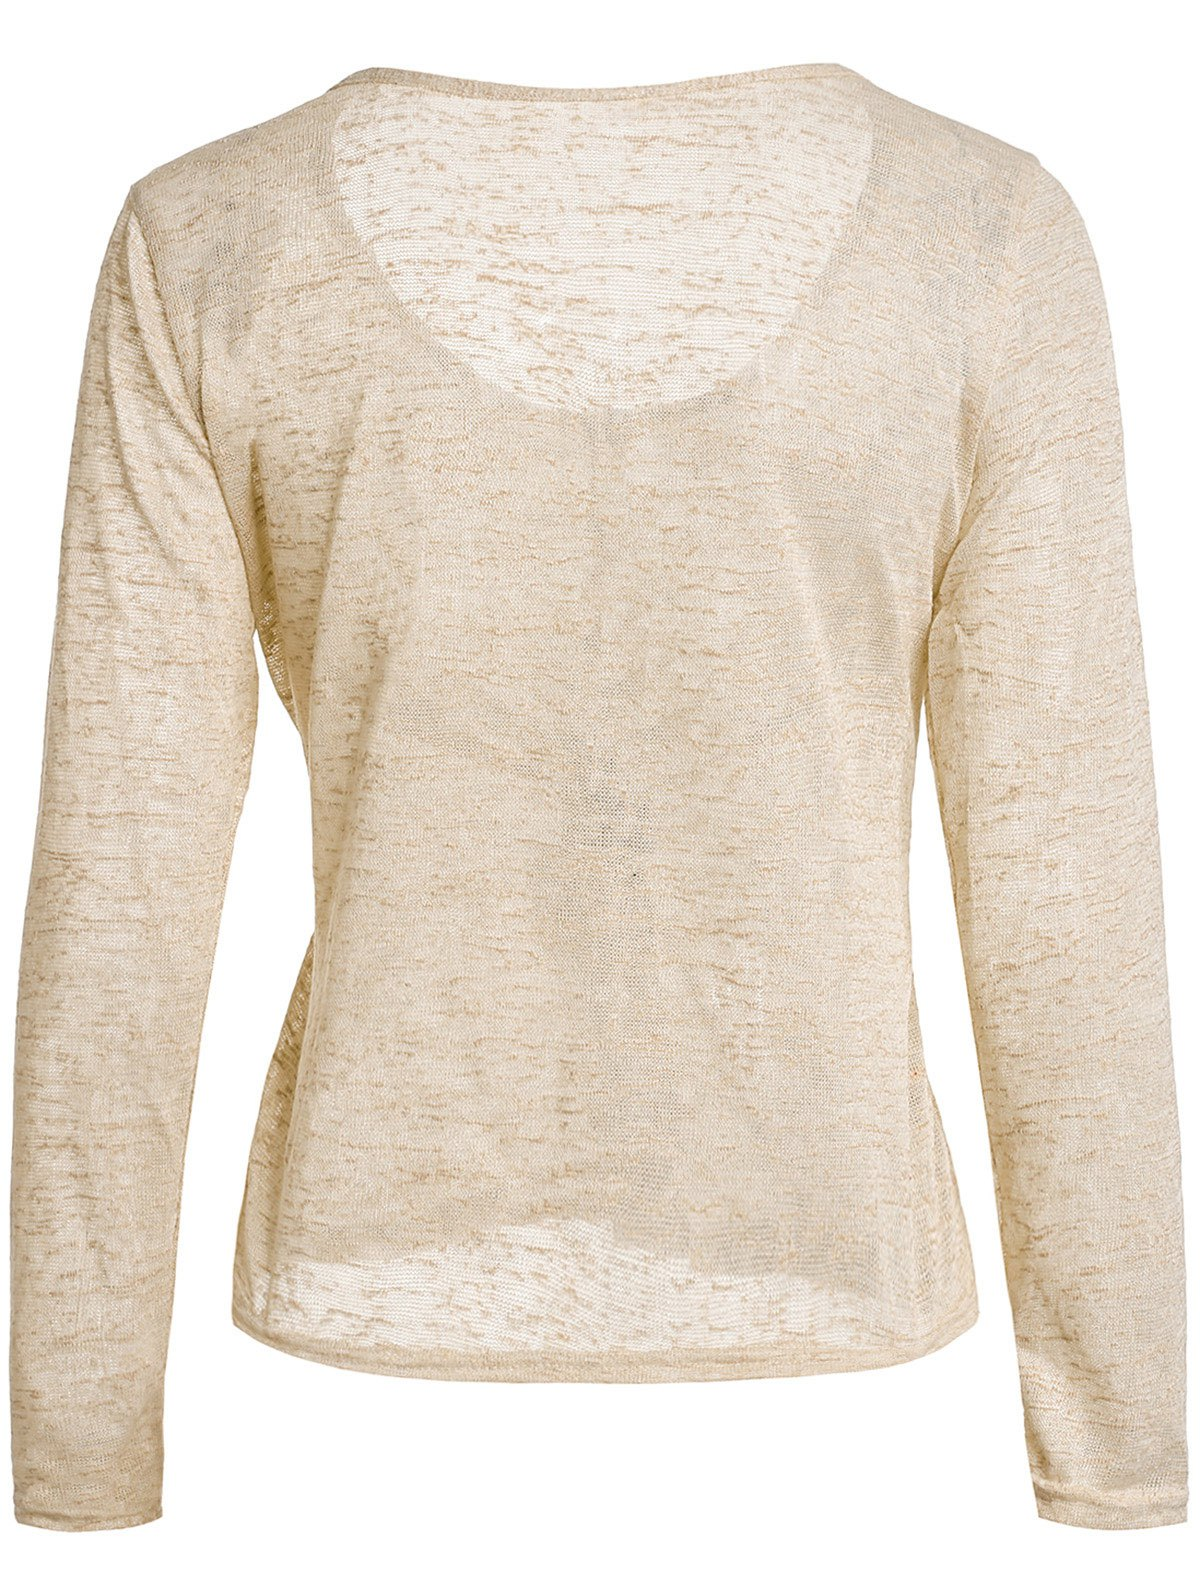 Pullover Long Sleeve Scoop Neck Solid Color Blouse For Women - BEIGE L